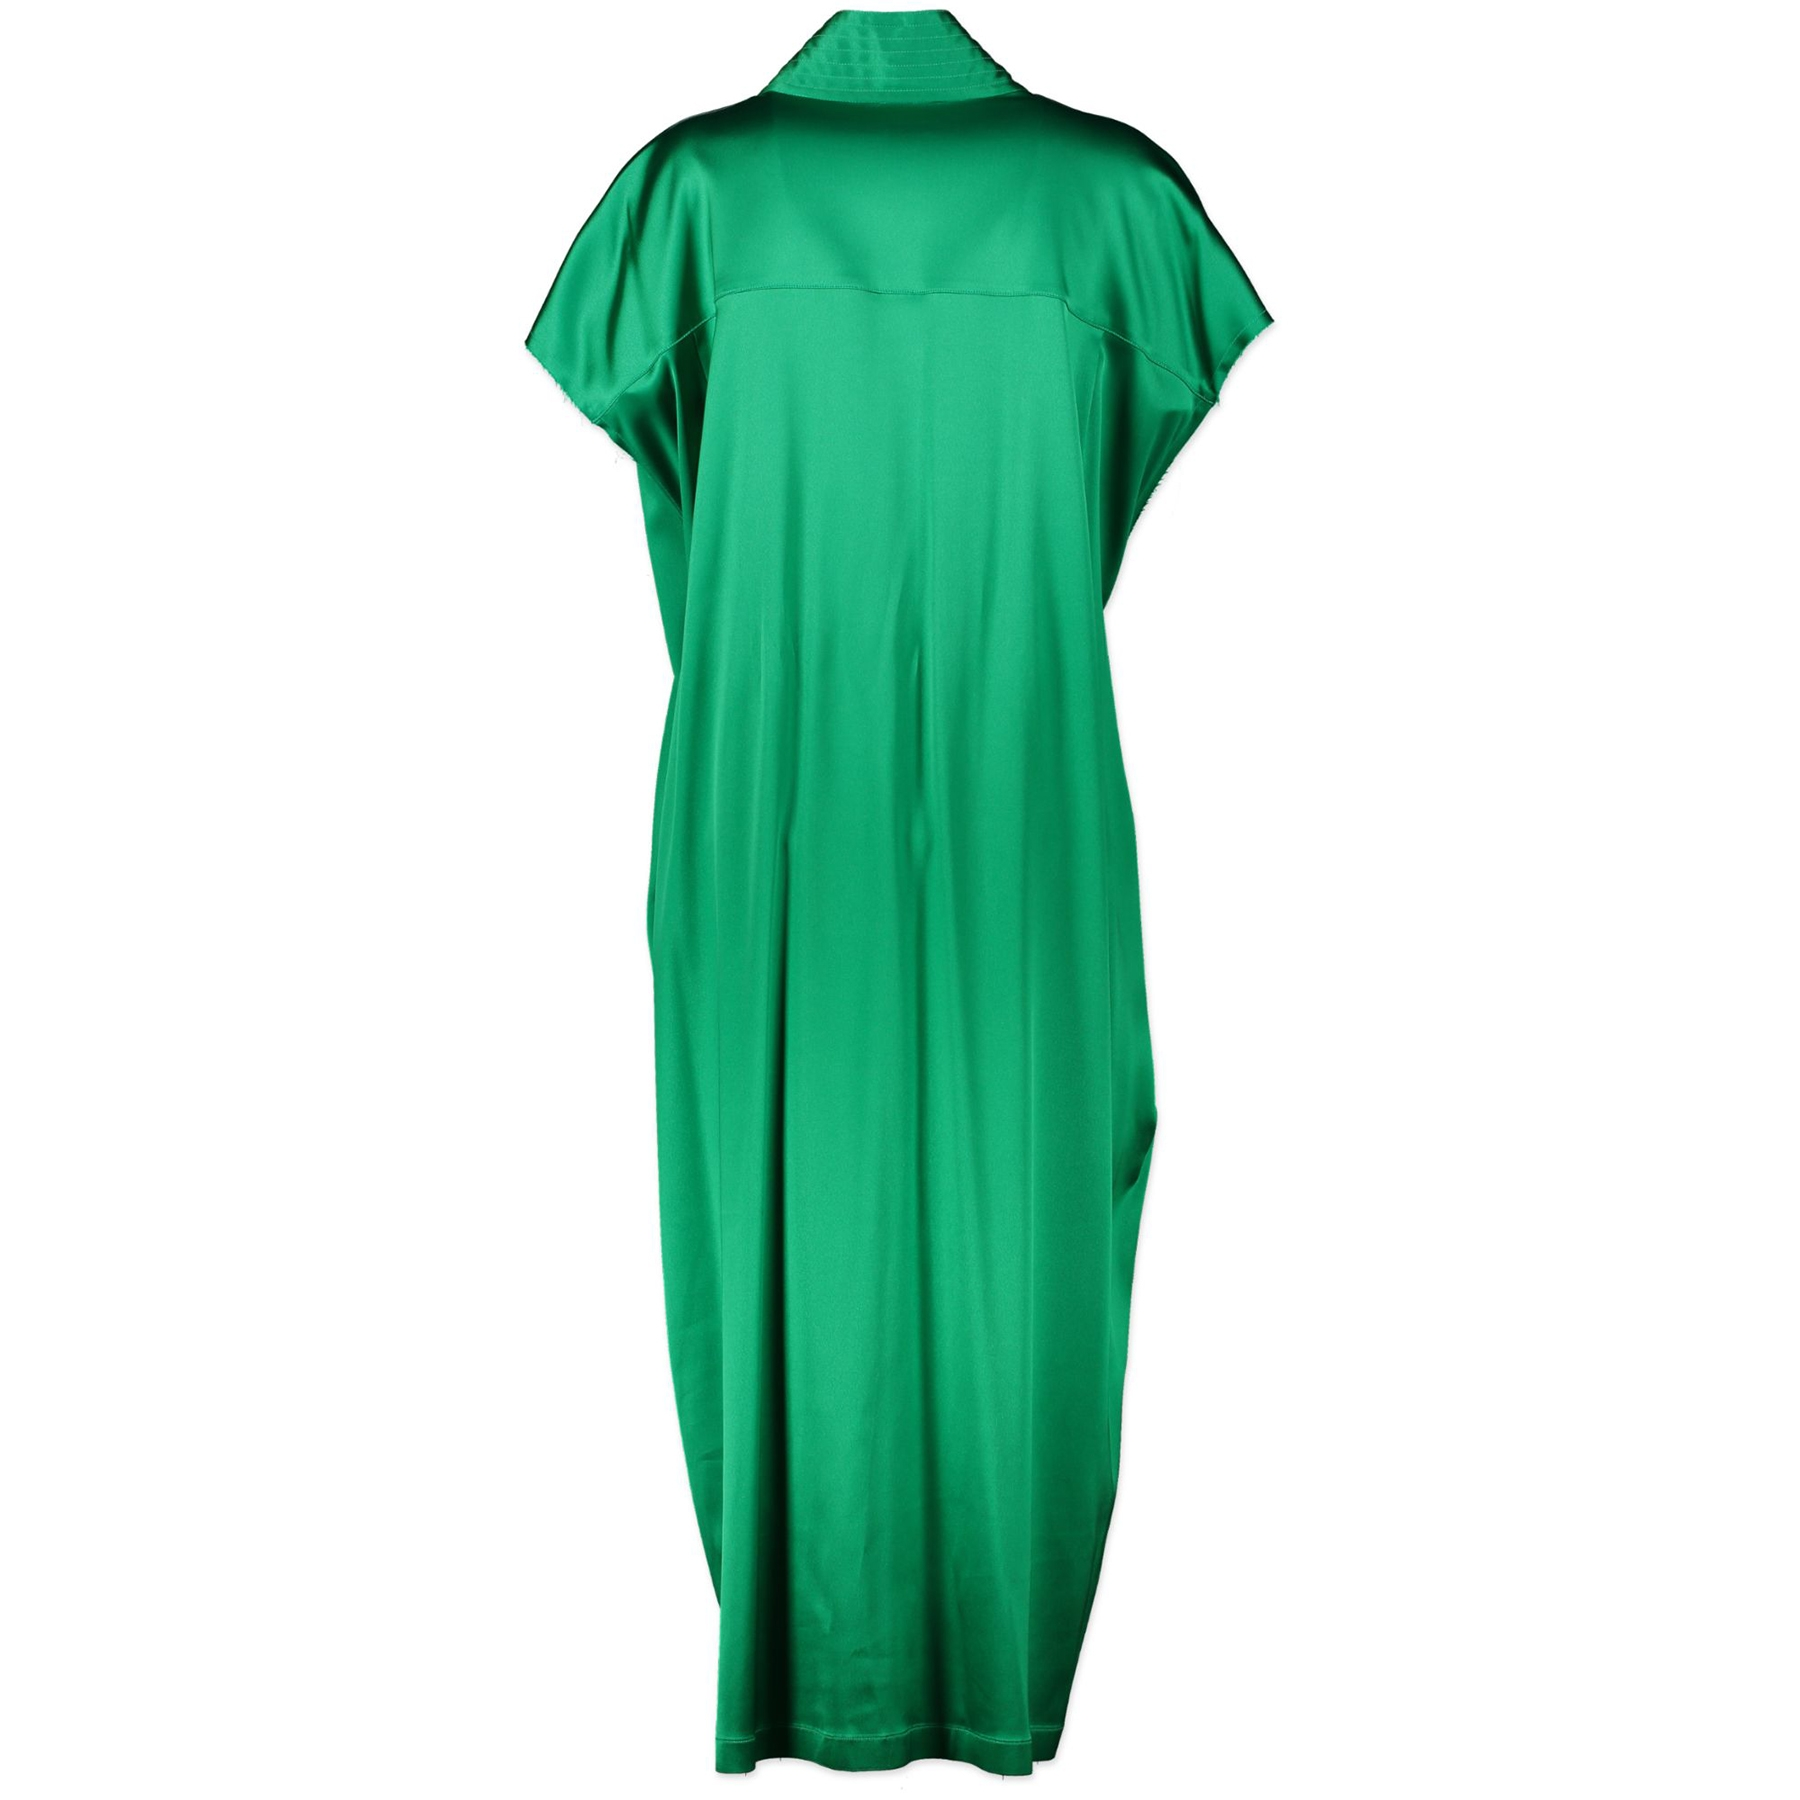 Buy Authentic Balenciaga Judo Satin Midi Wrap Dress Emerald - Size 38 at the right price online safe and secure online webshop luxe merken LabelLOV Antwerp Belgium